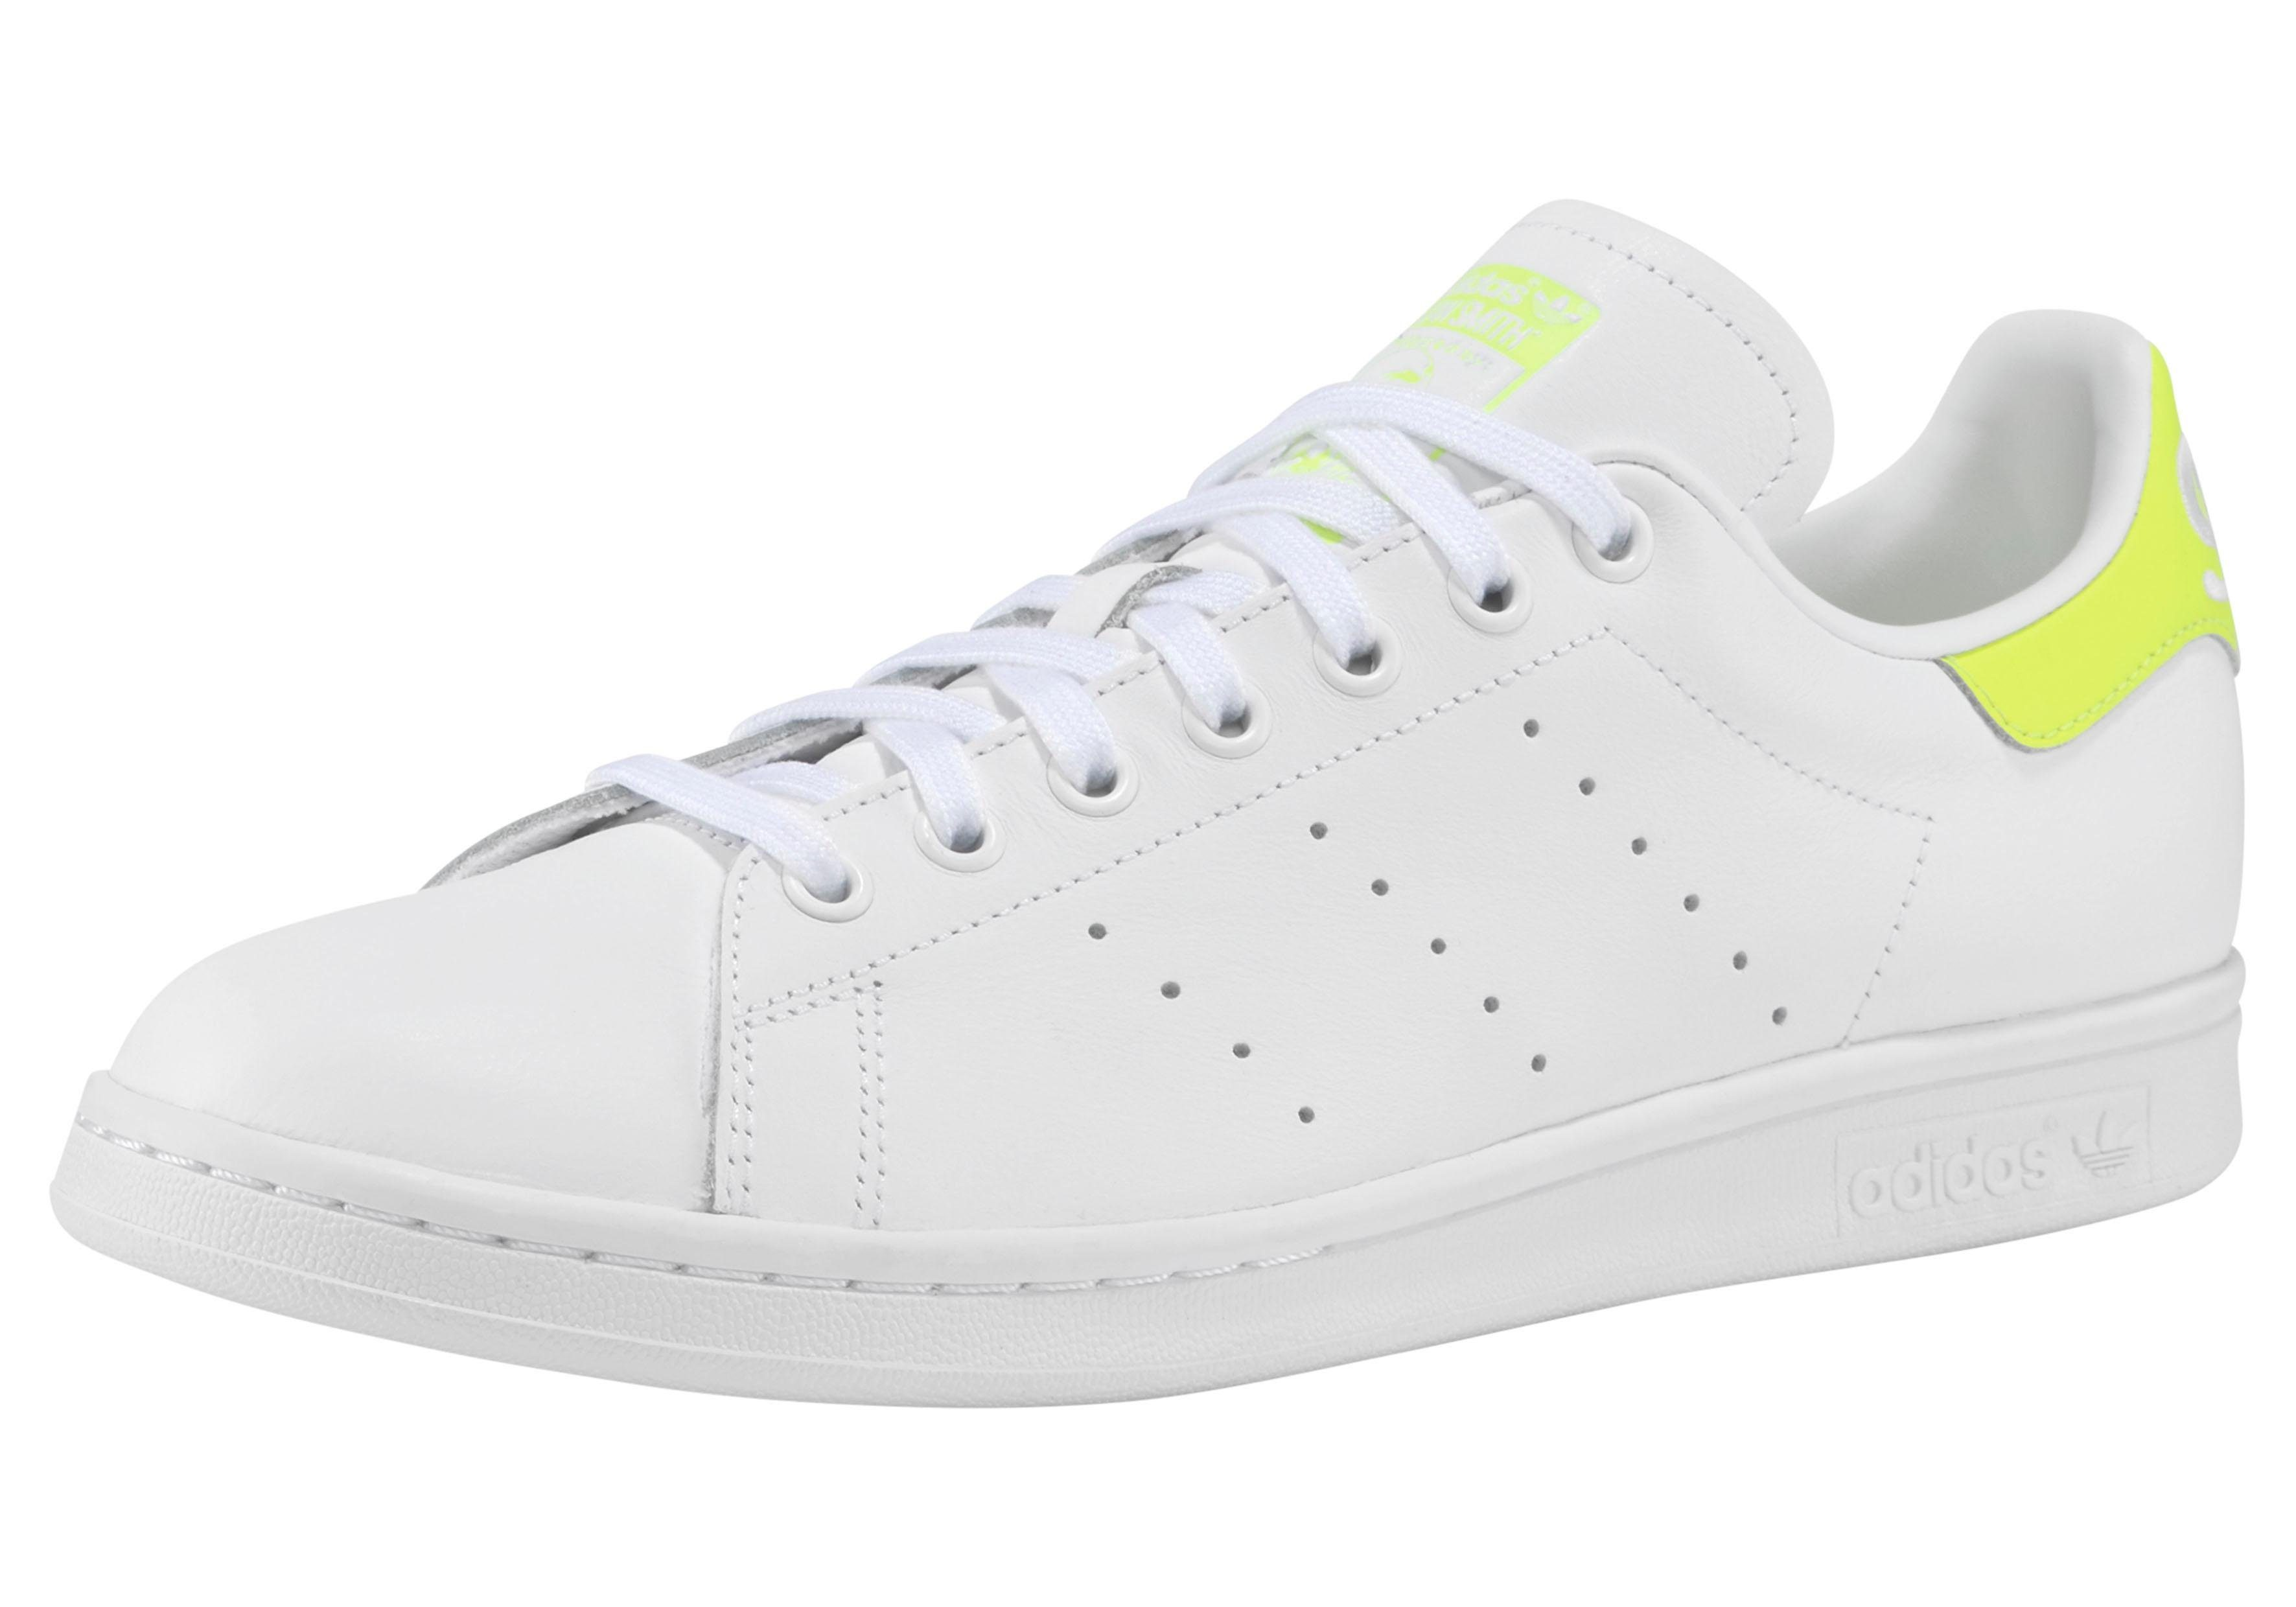 18 Sneakers to Buy After You've Worn Out Your Stan Smiths